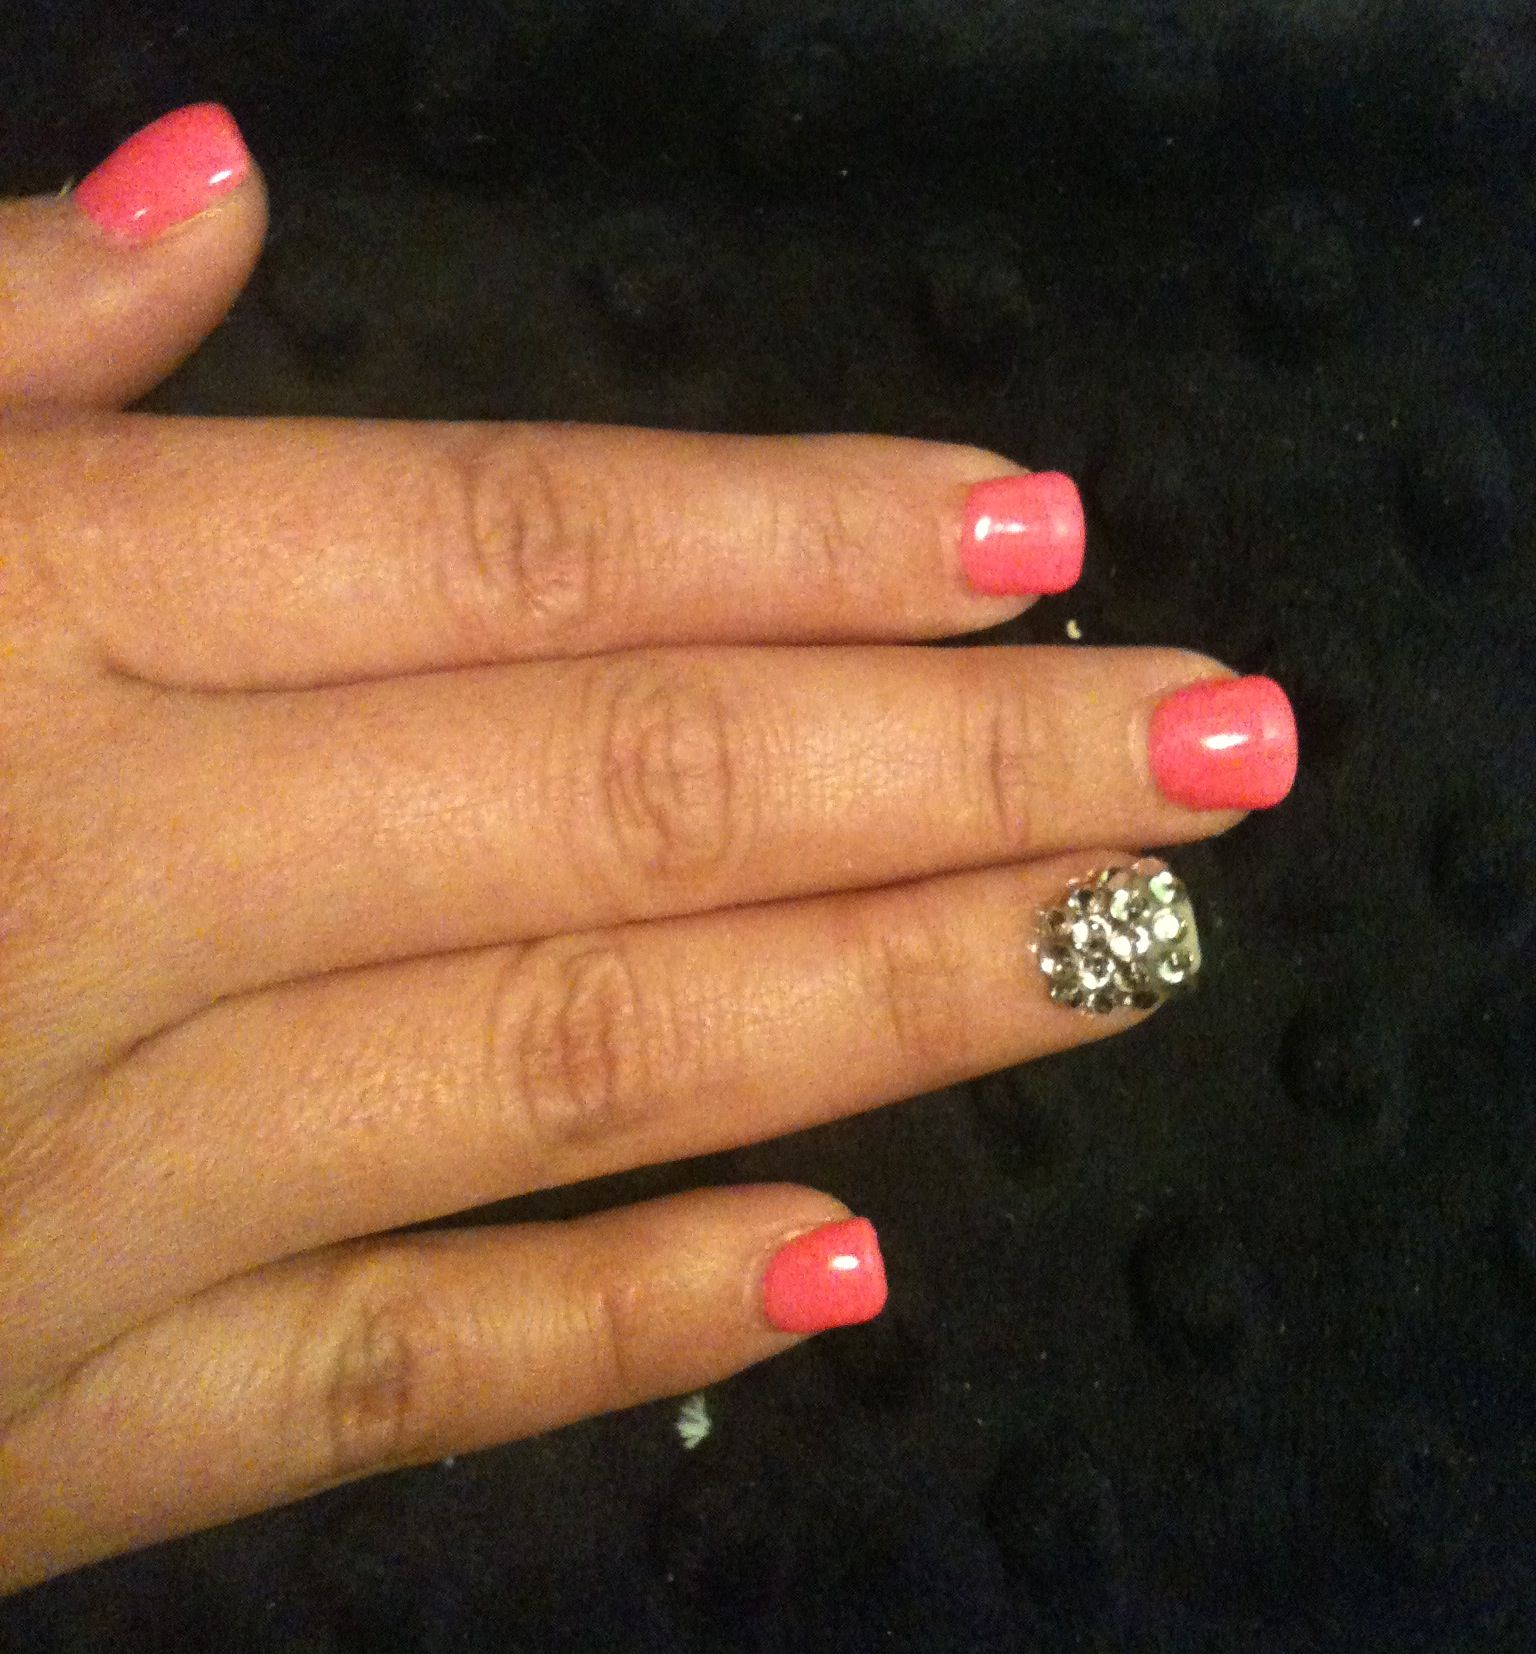 Nails done by me. :)